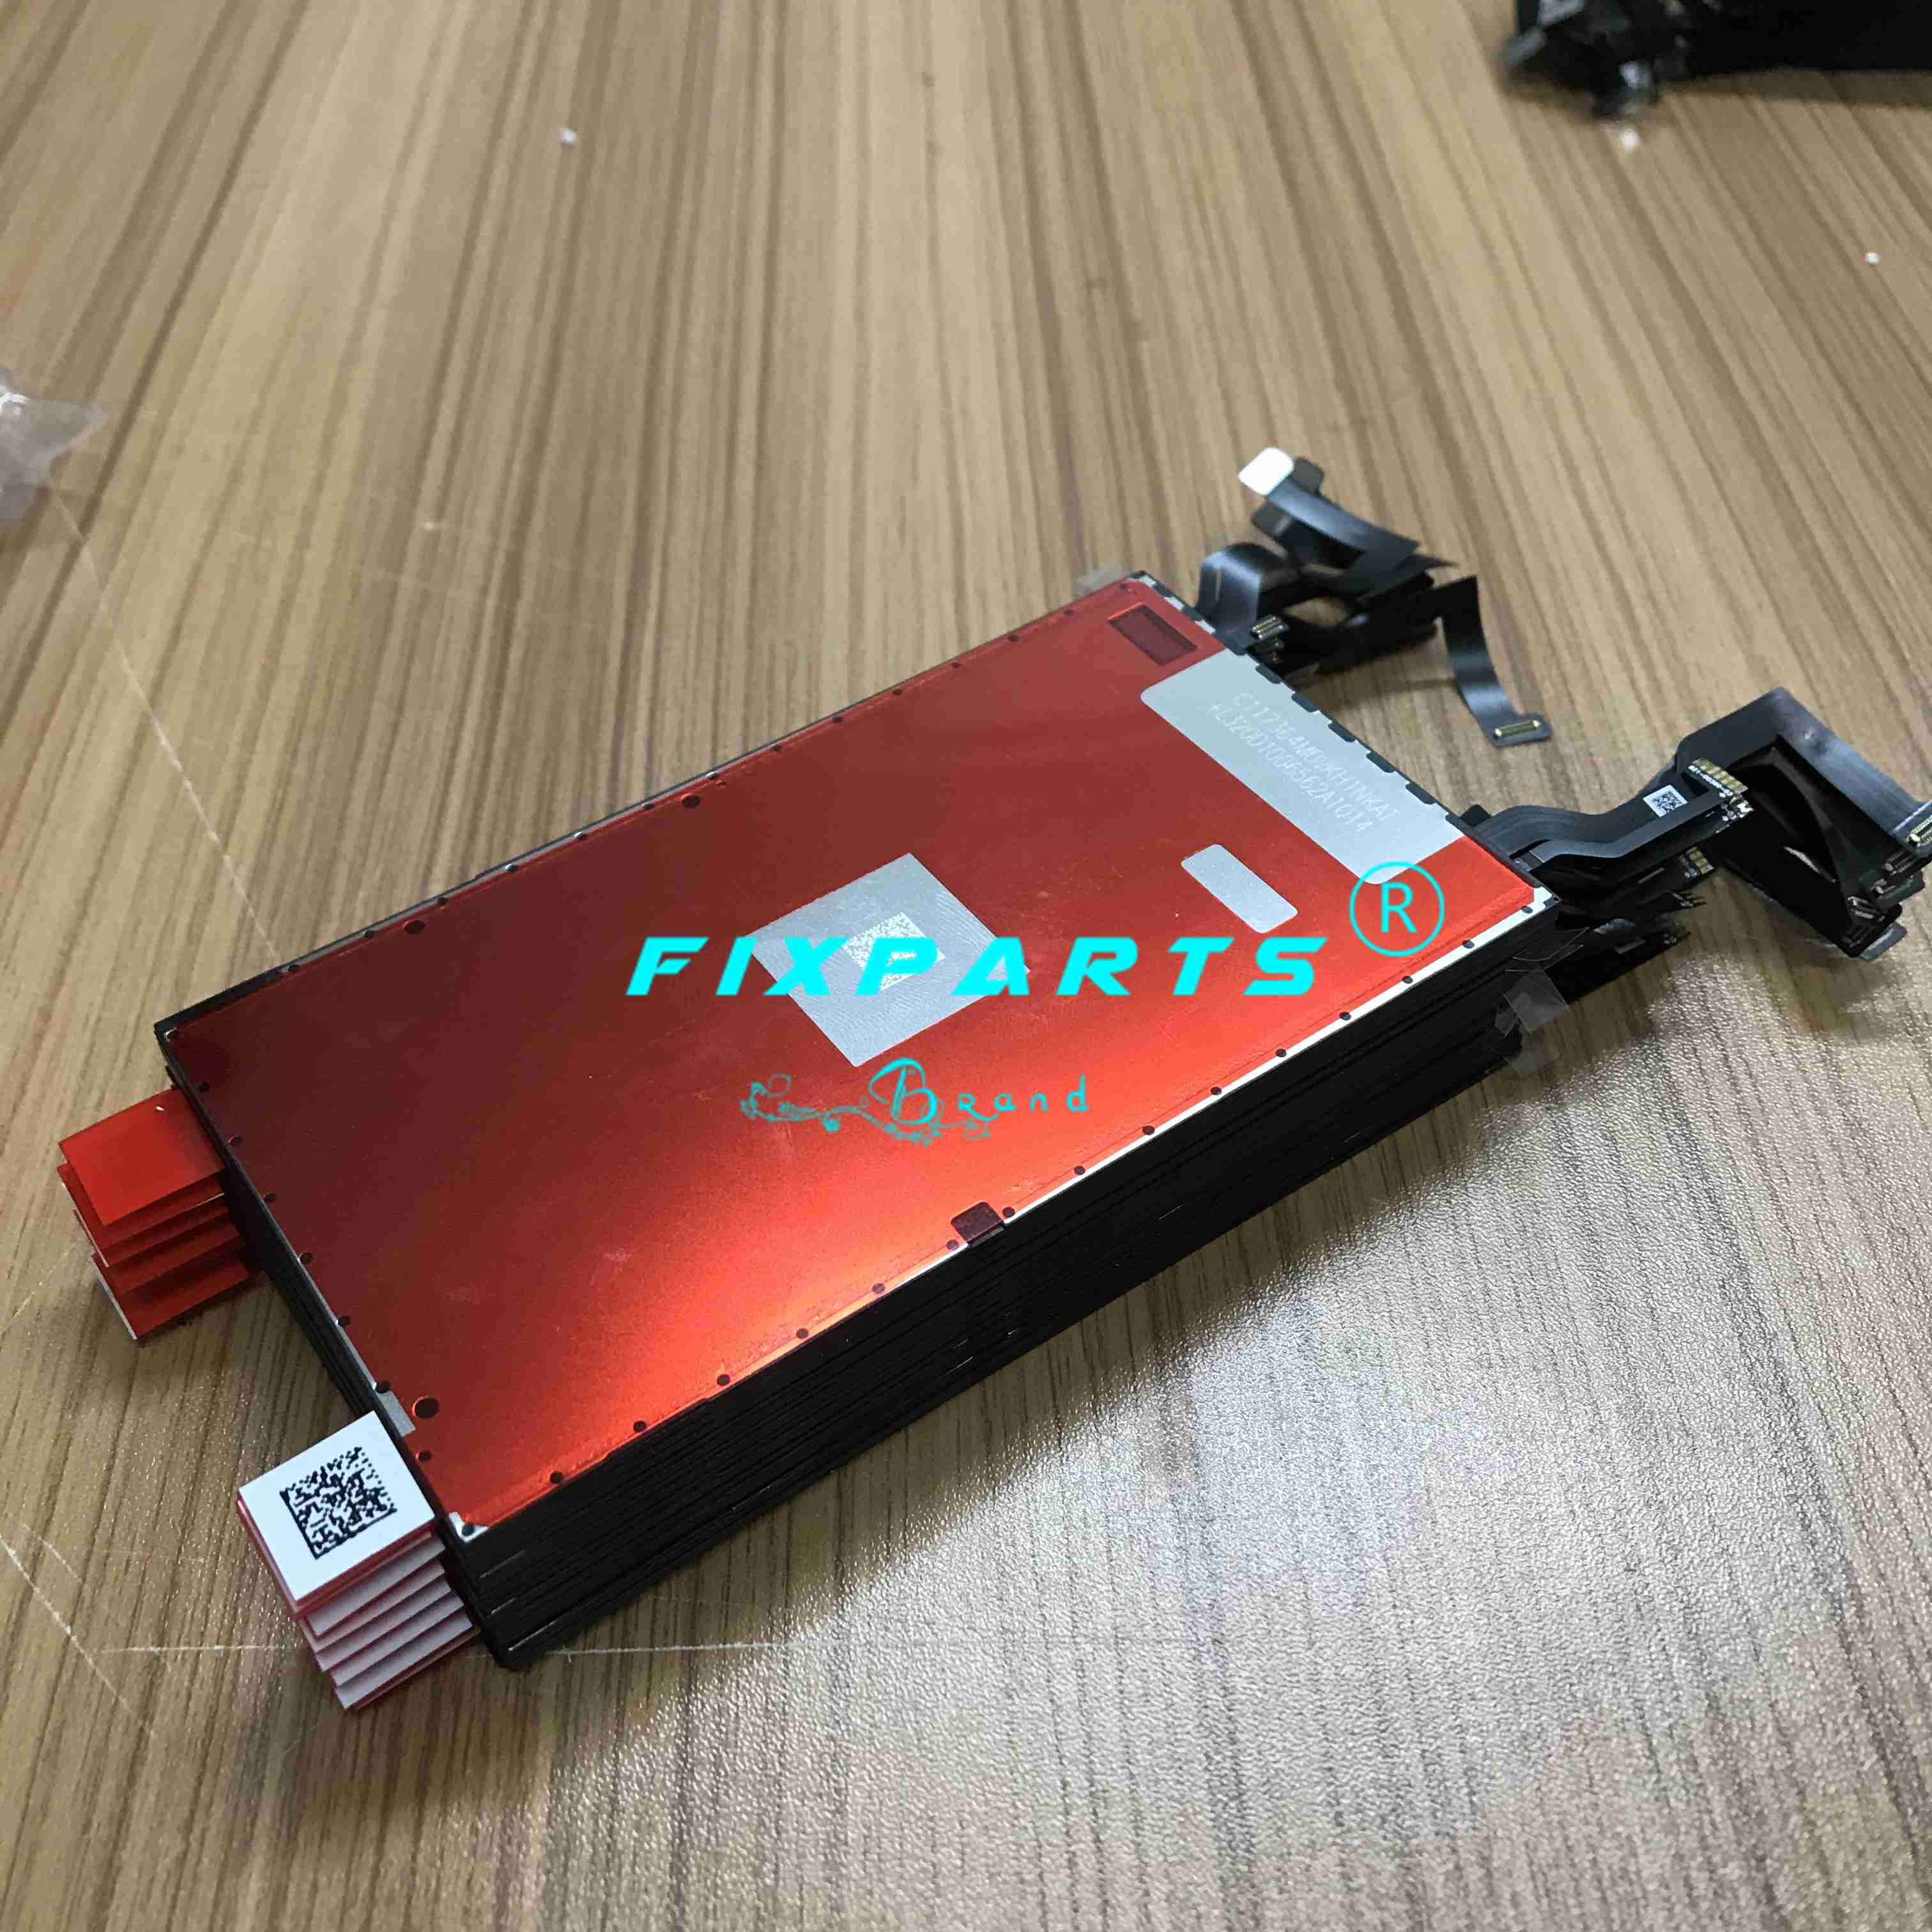 iPhone 5 6 7 series LCD Backlight Film